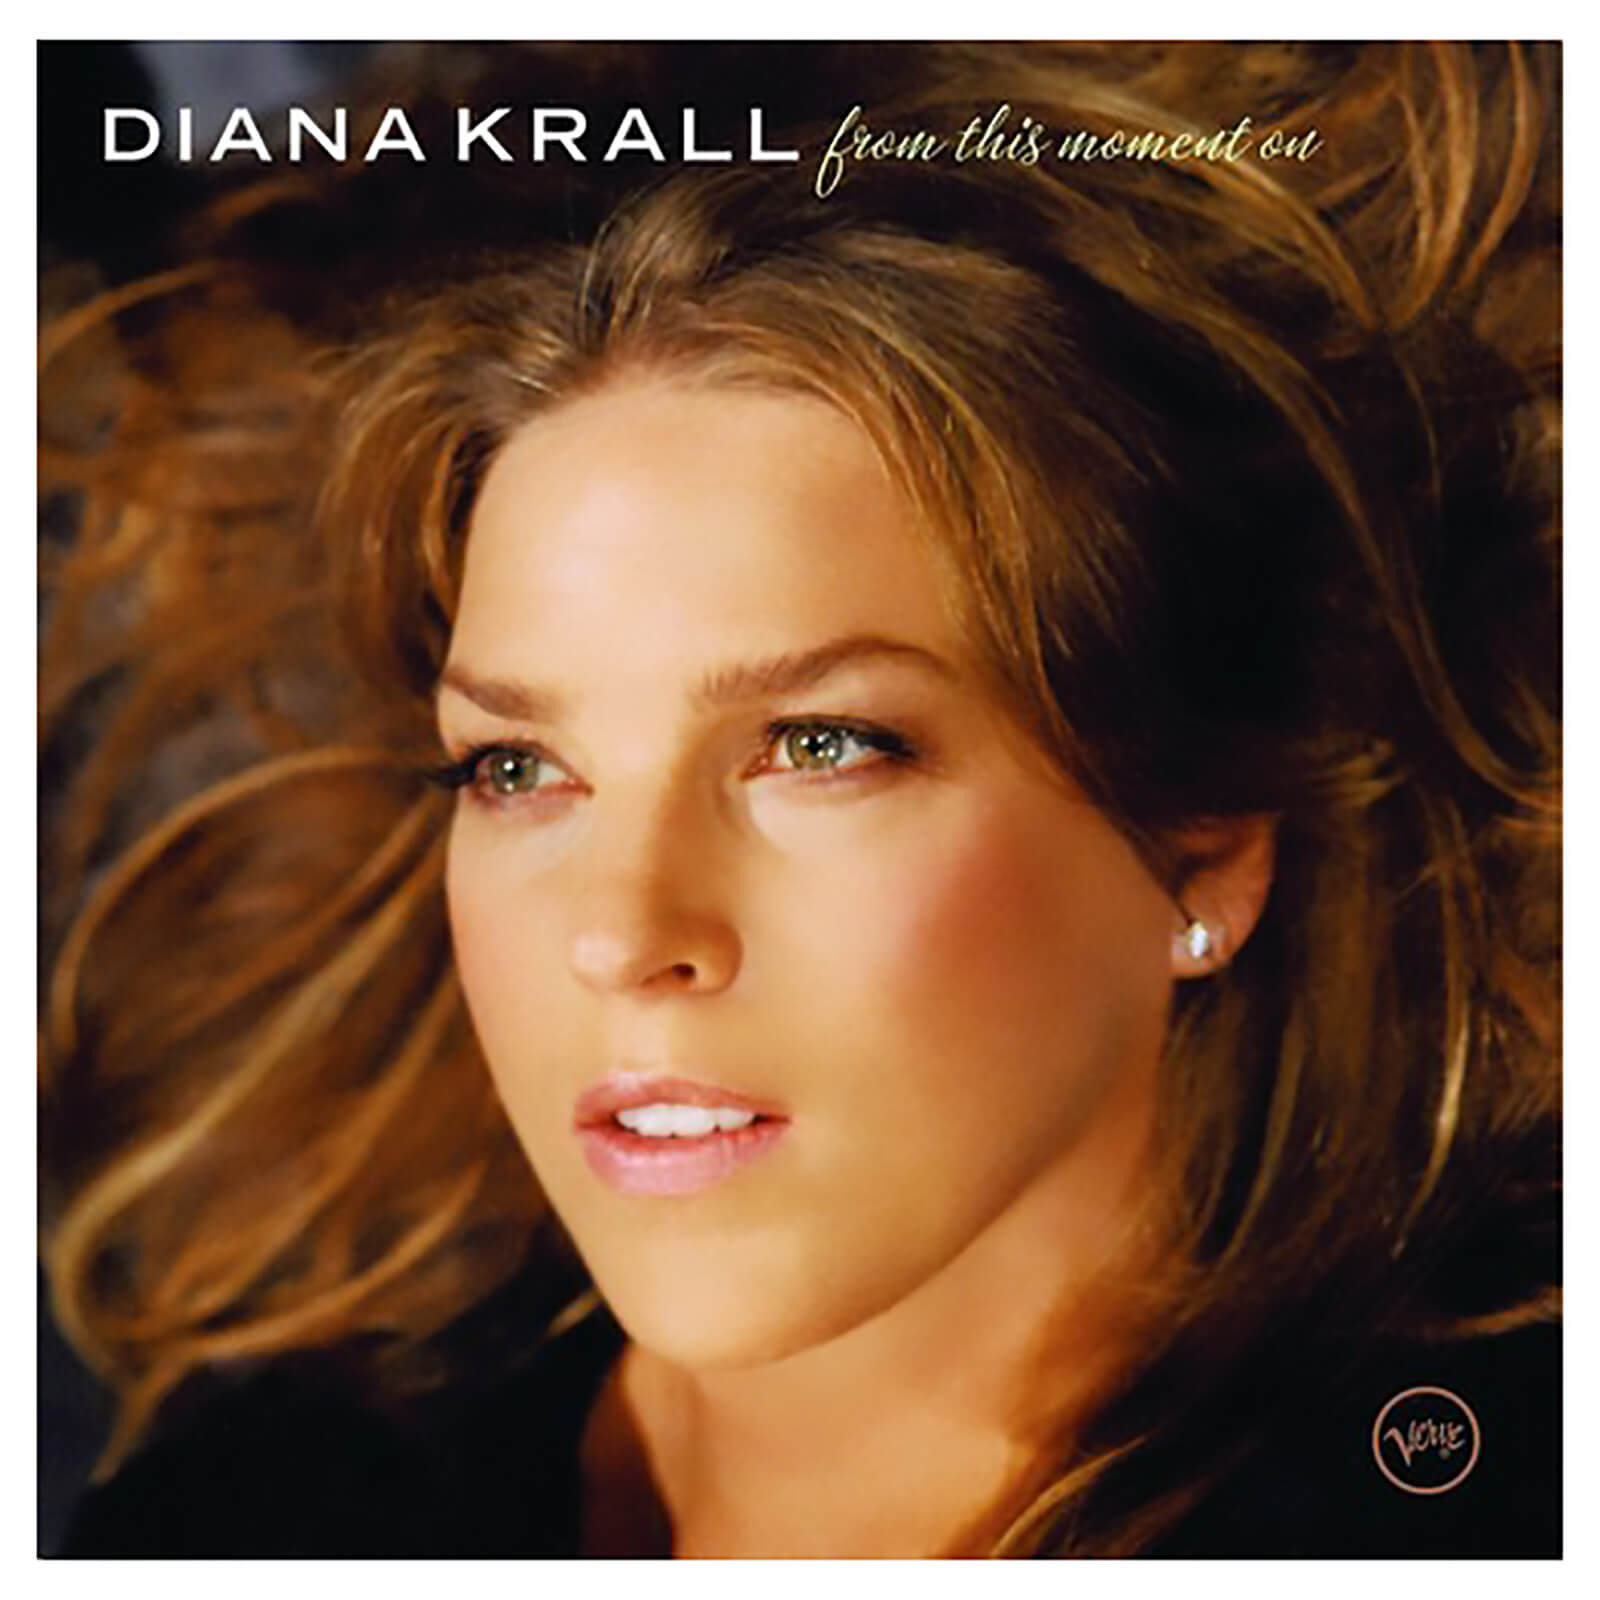 Diana Krall - From This Moment On - Vinyl